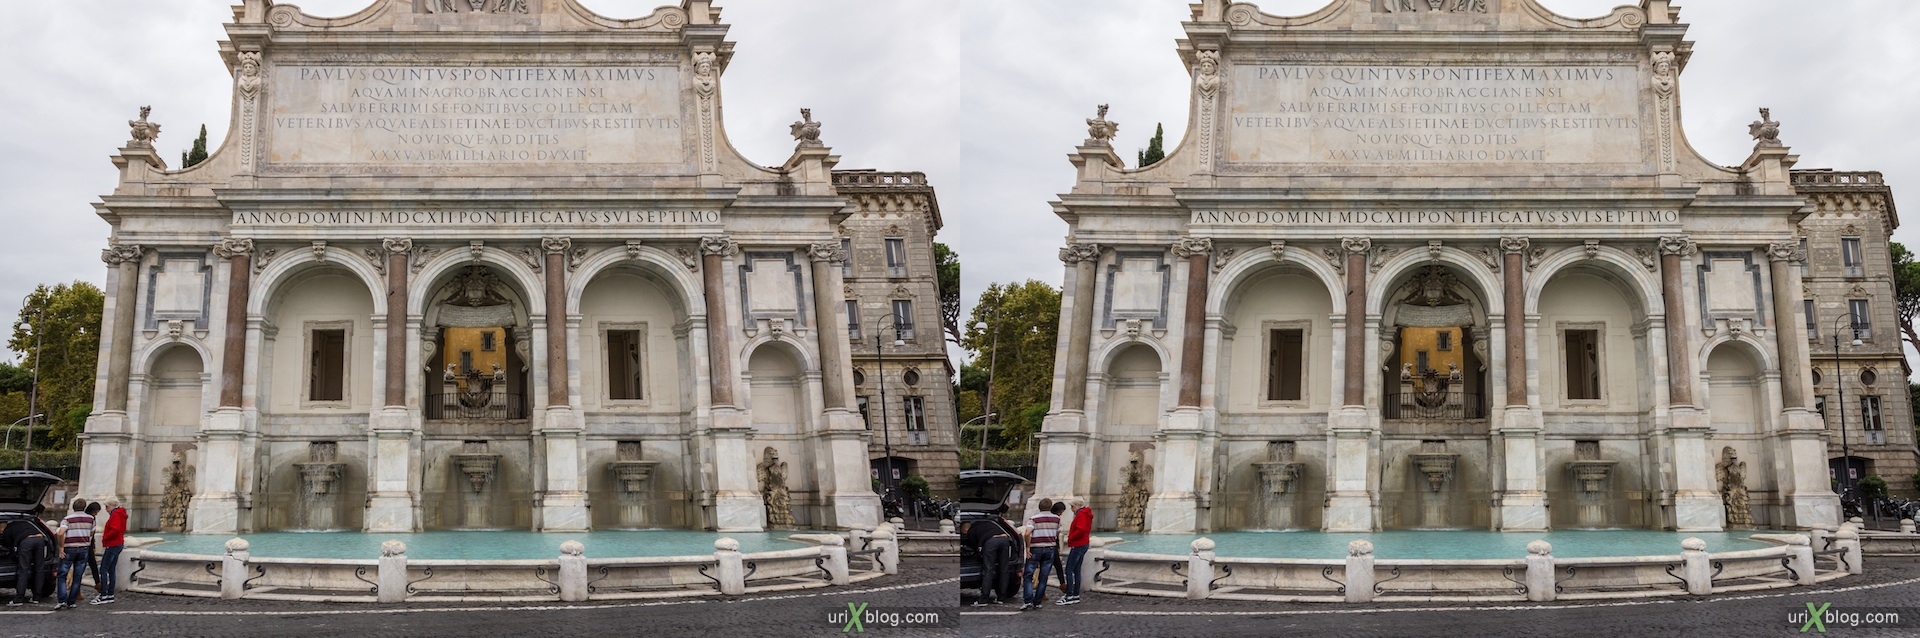 2012, dell'Acqua Paola fountain, Rome, Italy, 3D, stereo pair, cross-eyed, crossview, cross view stereo pair